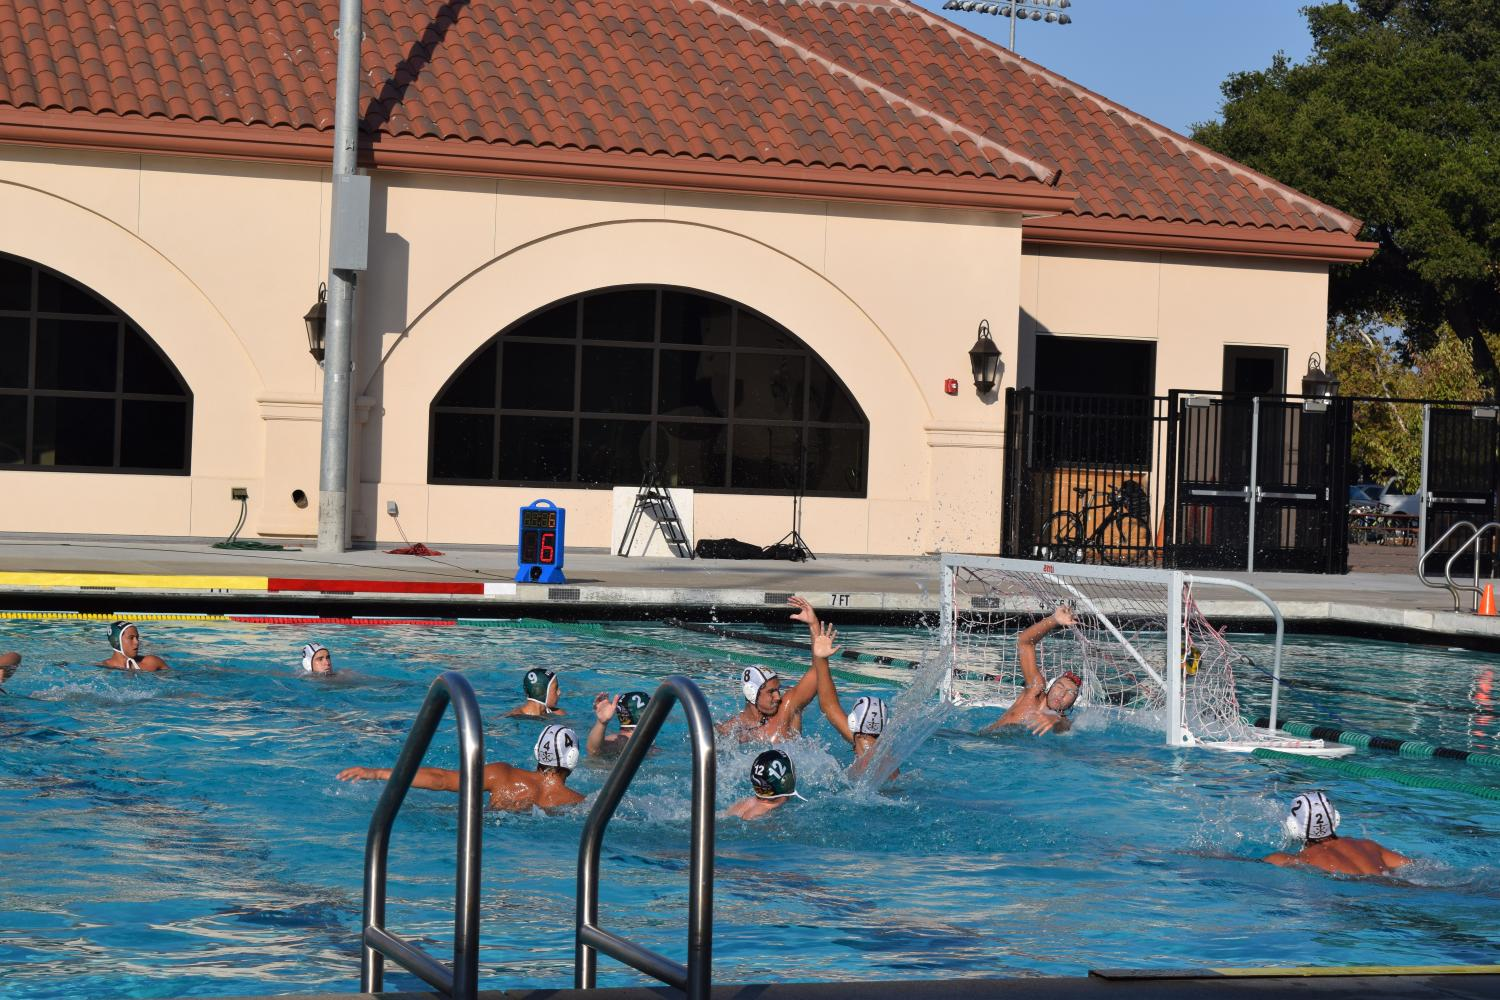 Varsity Boys Water Polo loses 13-6 to Saint Francis in a tough match